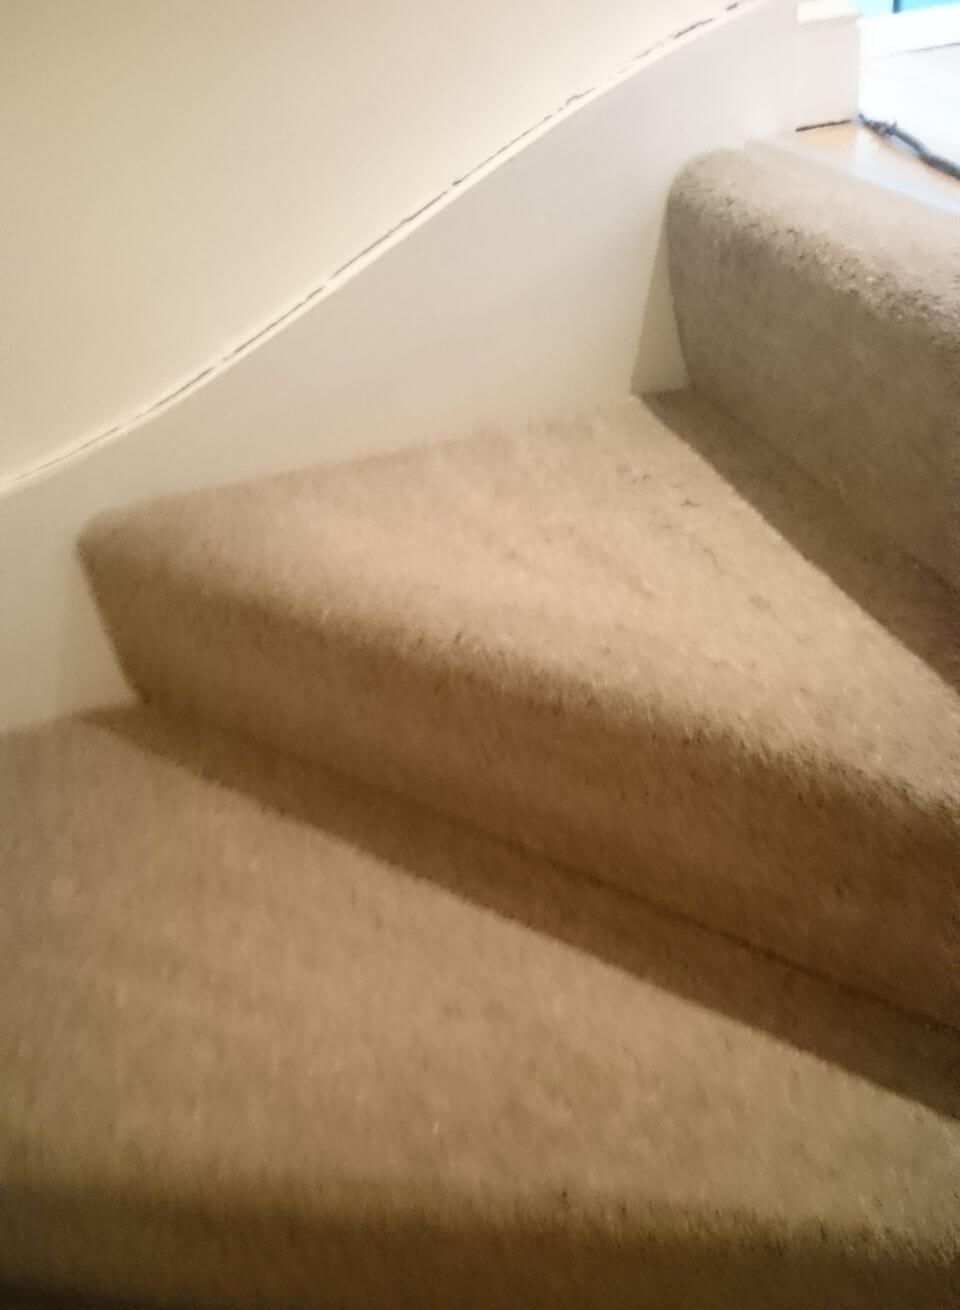 hire a carpet cleaner N14